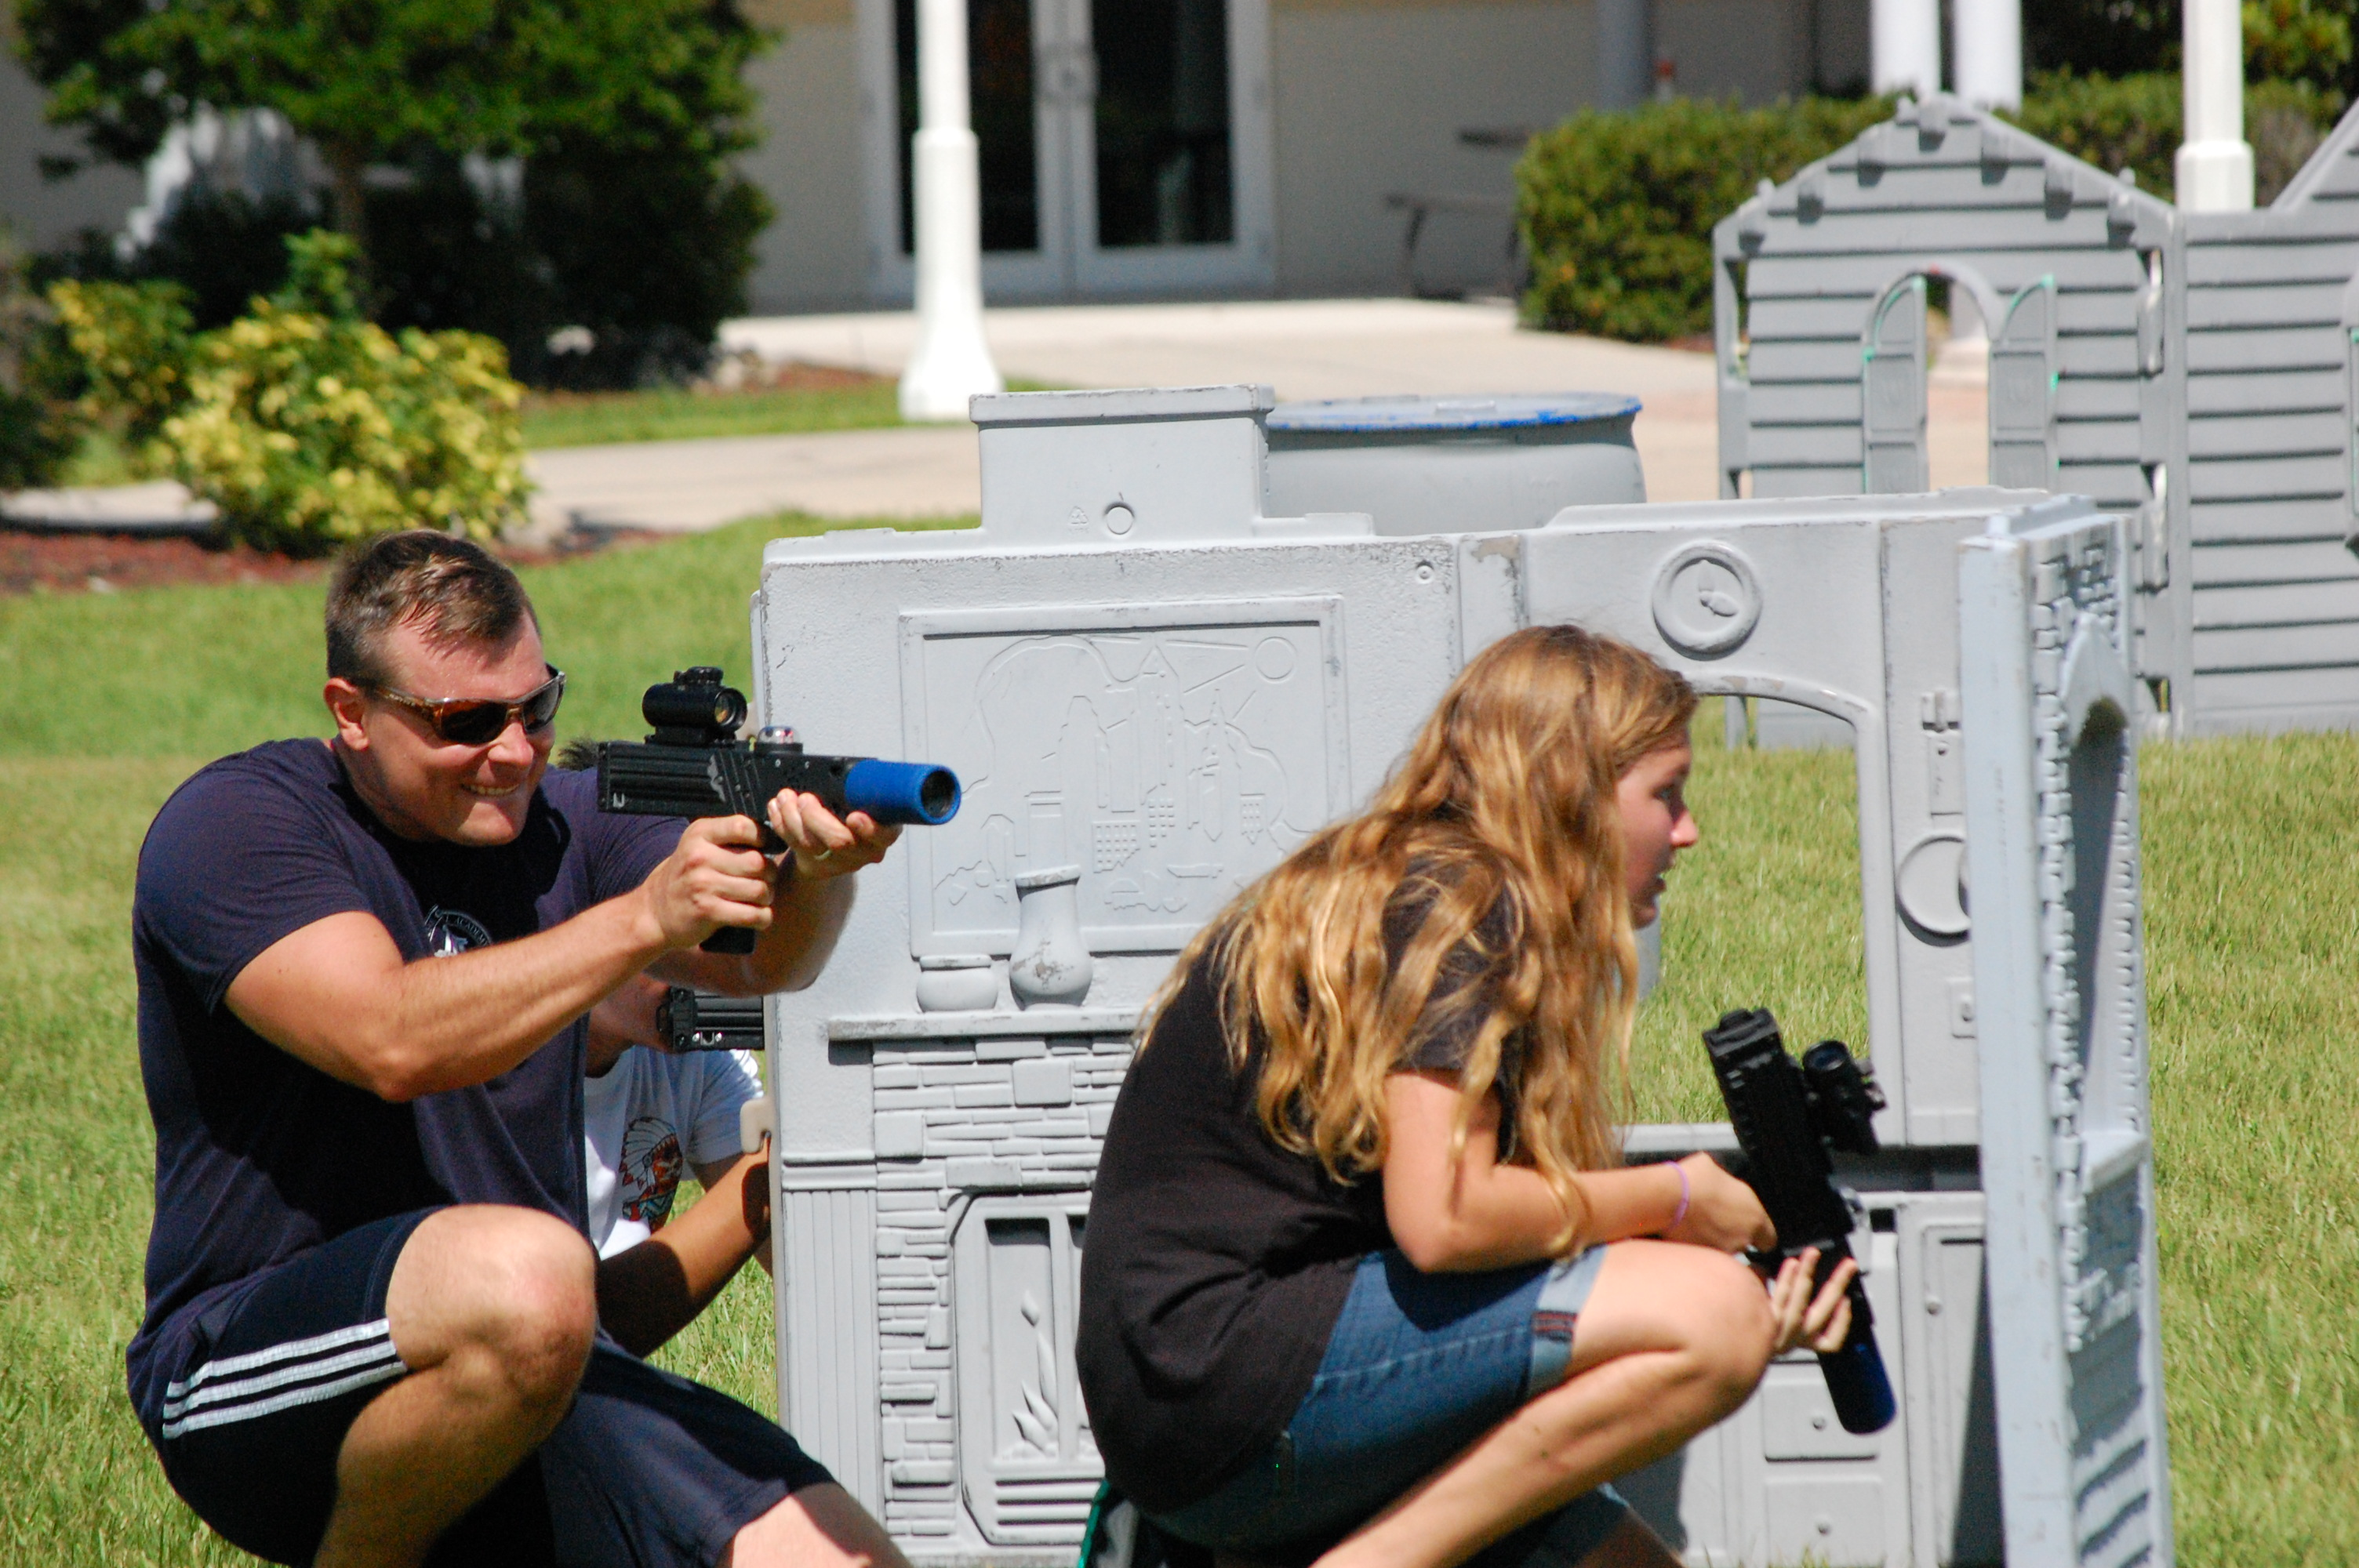 Mobile Laser Tag in Sarasota, FL (24)